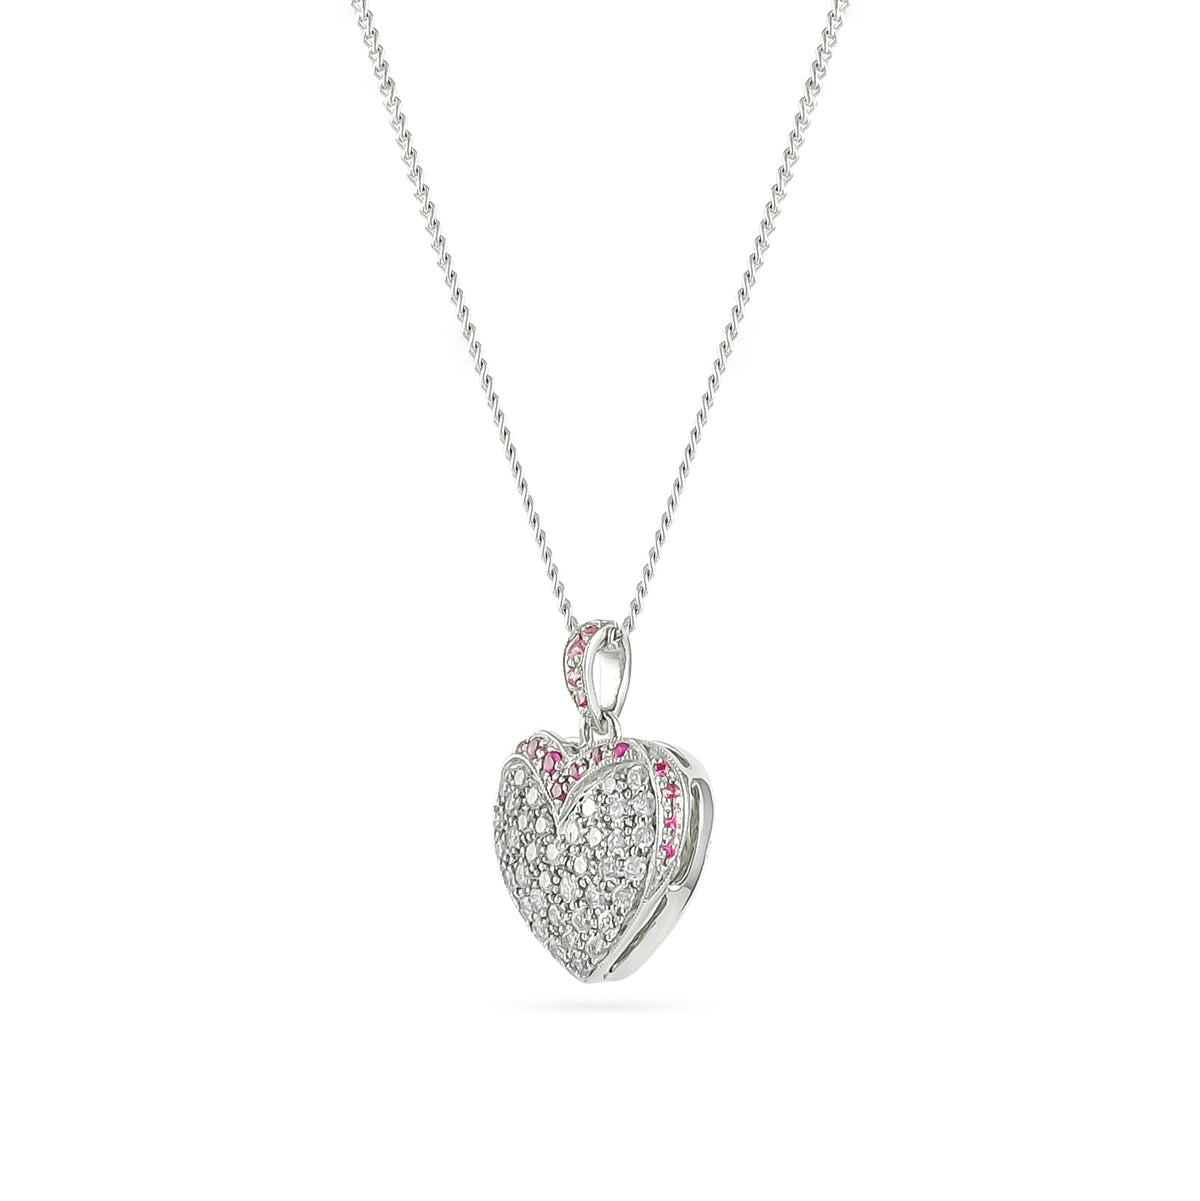 Vintage 14ct White Gold Ruby and Diamond Heart Pendant